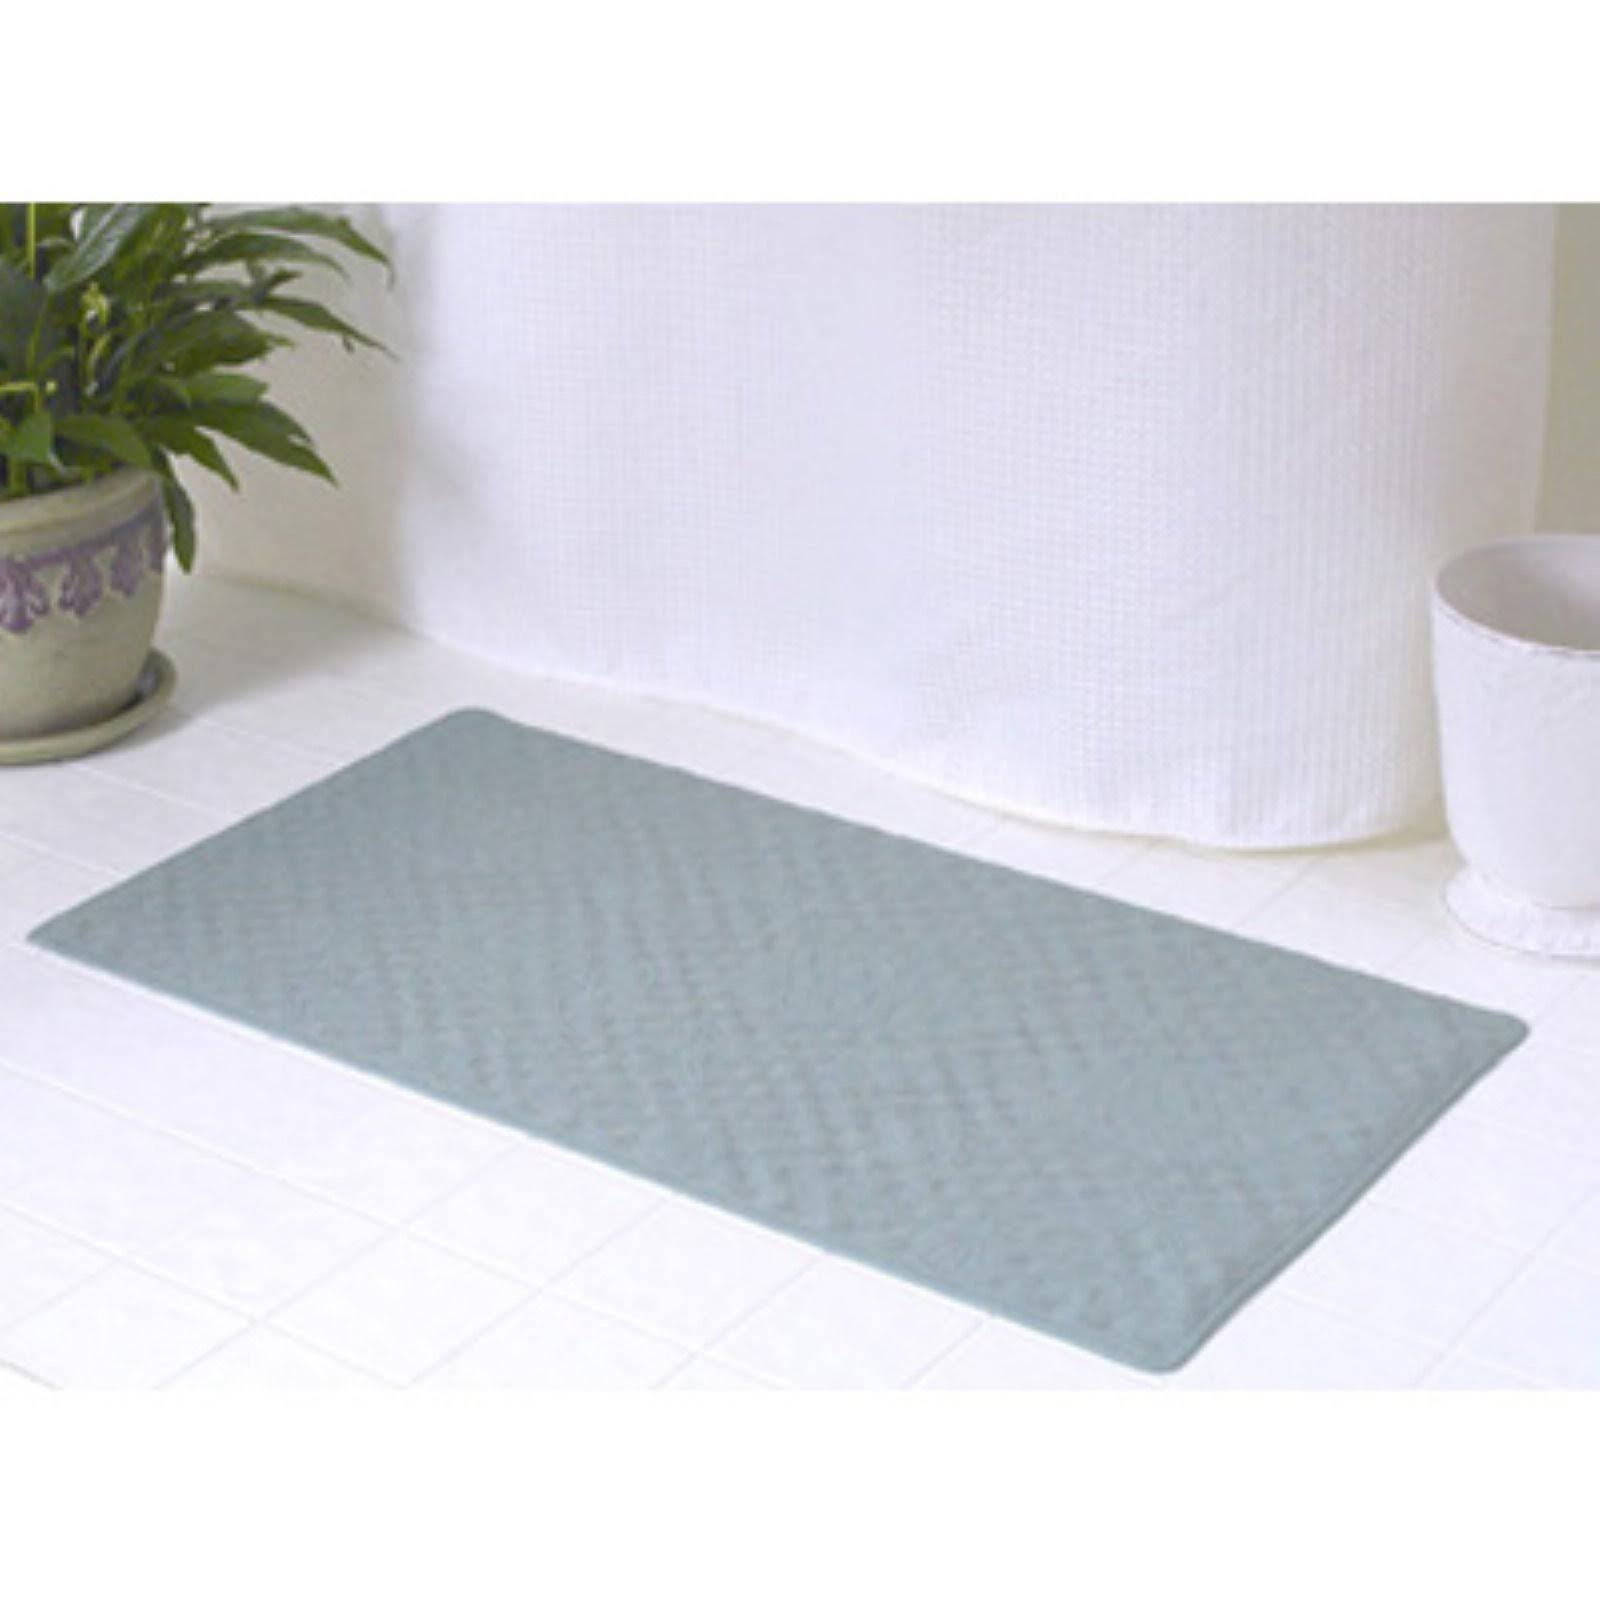 "Carnation Home Fashions Rubber Shower Mat - Sage 16"" x 28"""